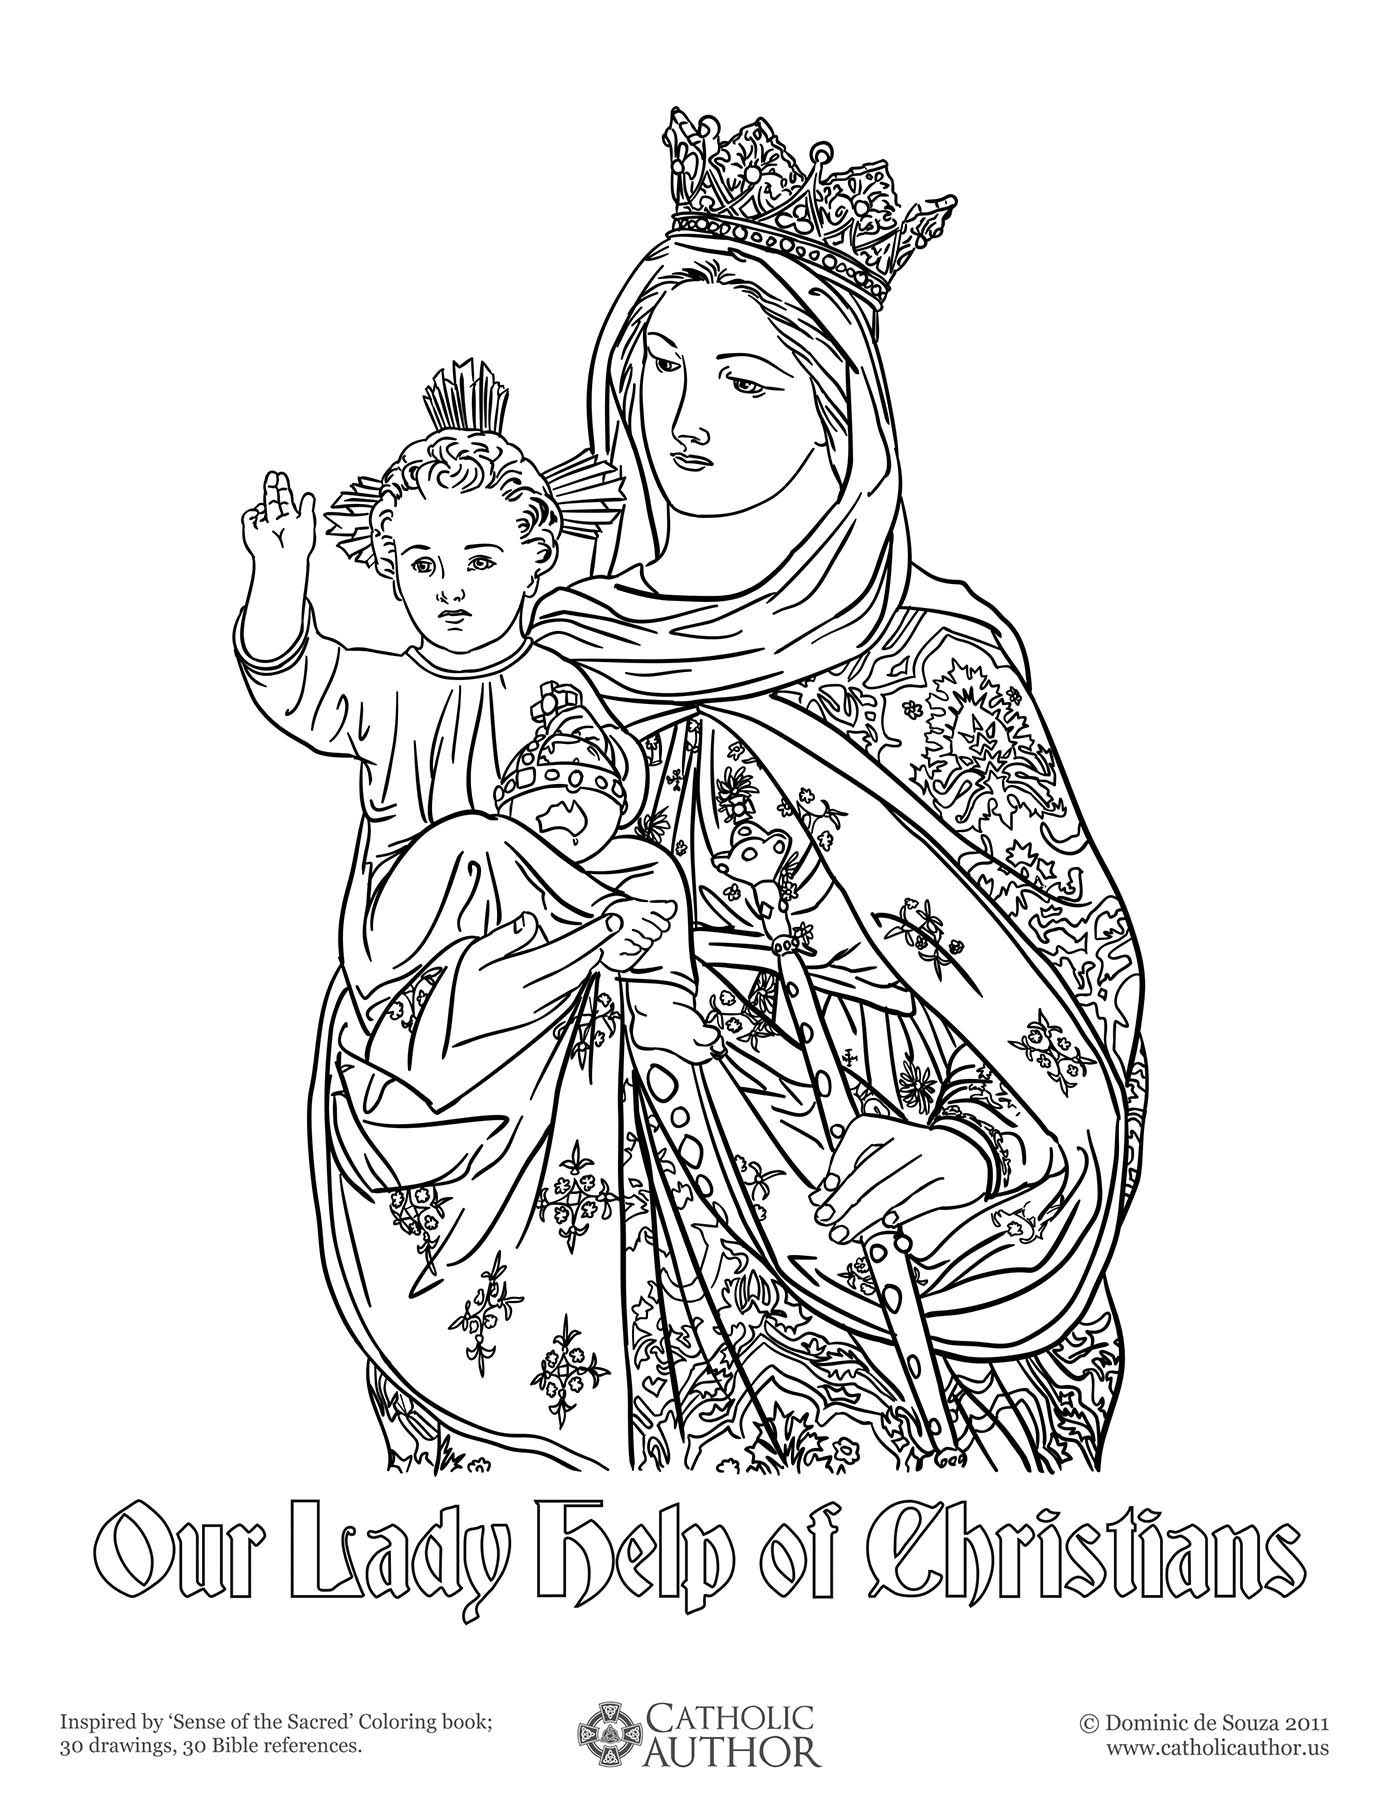 12 Free Hand-Drawn Catholic Coloring Pictures | Coloring ...